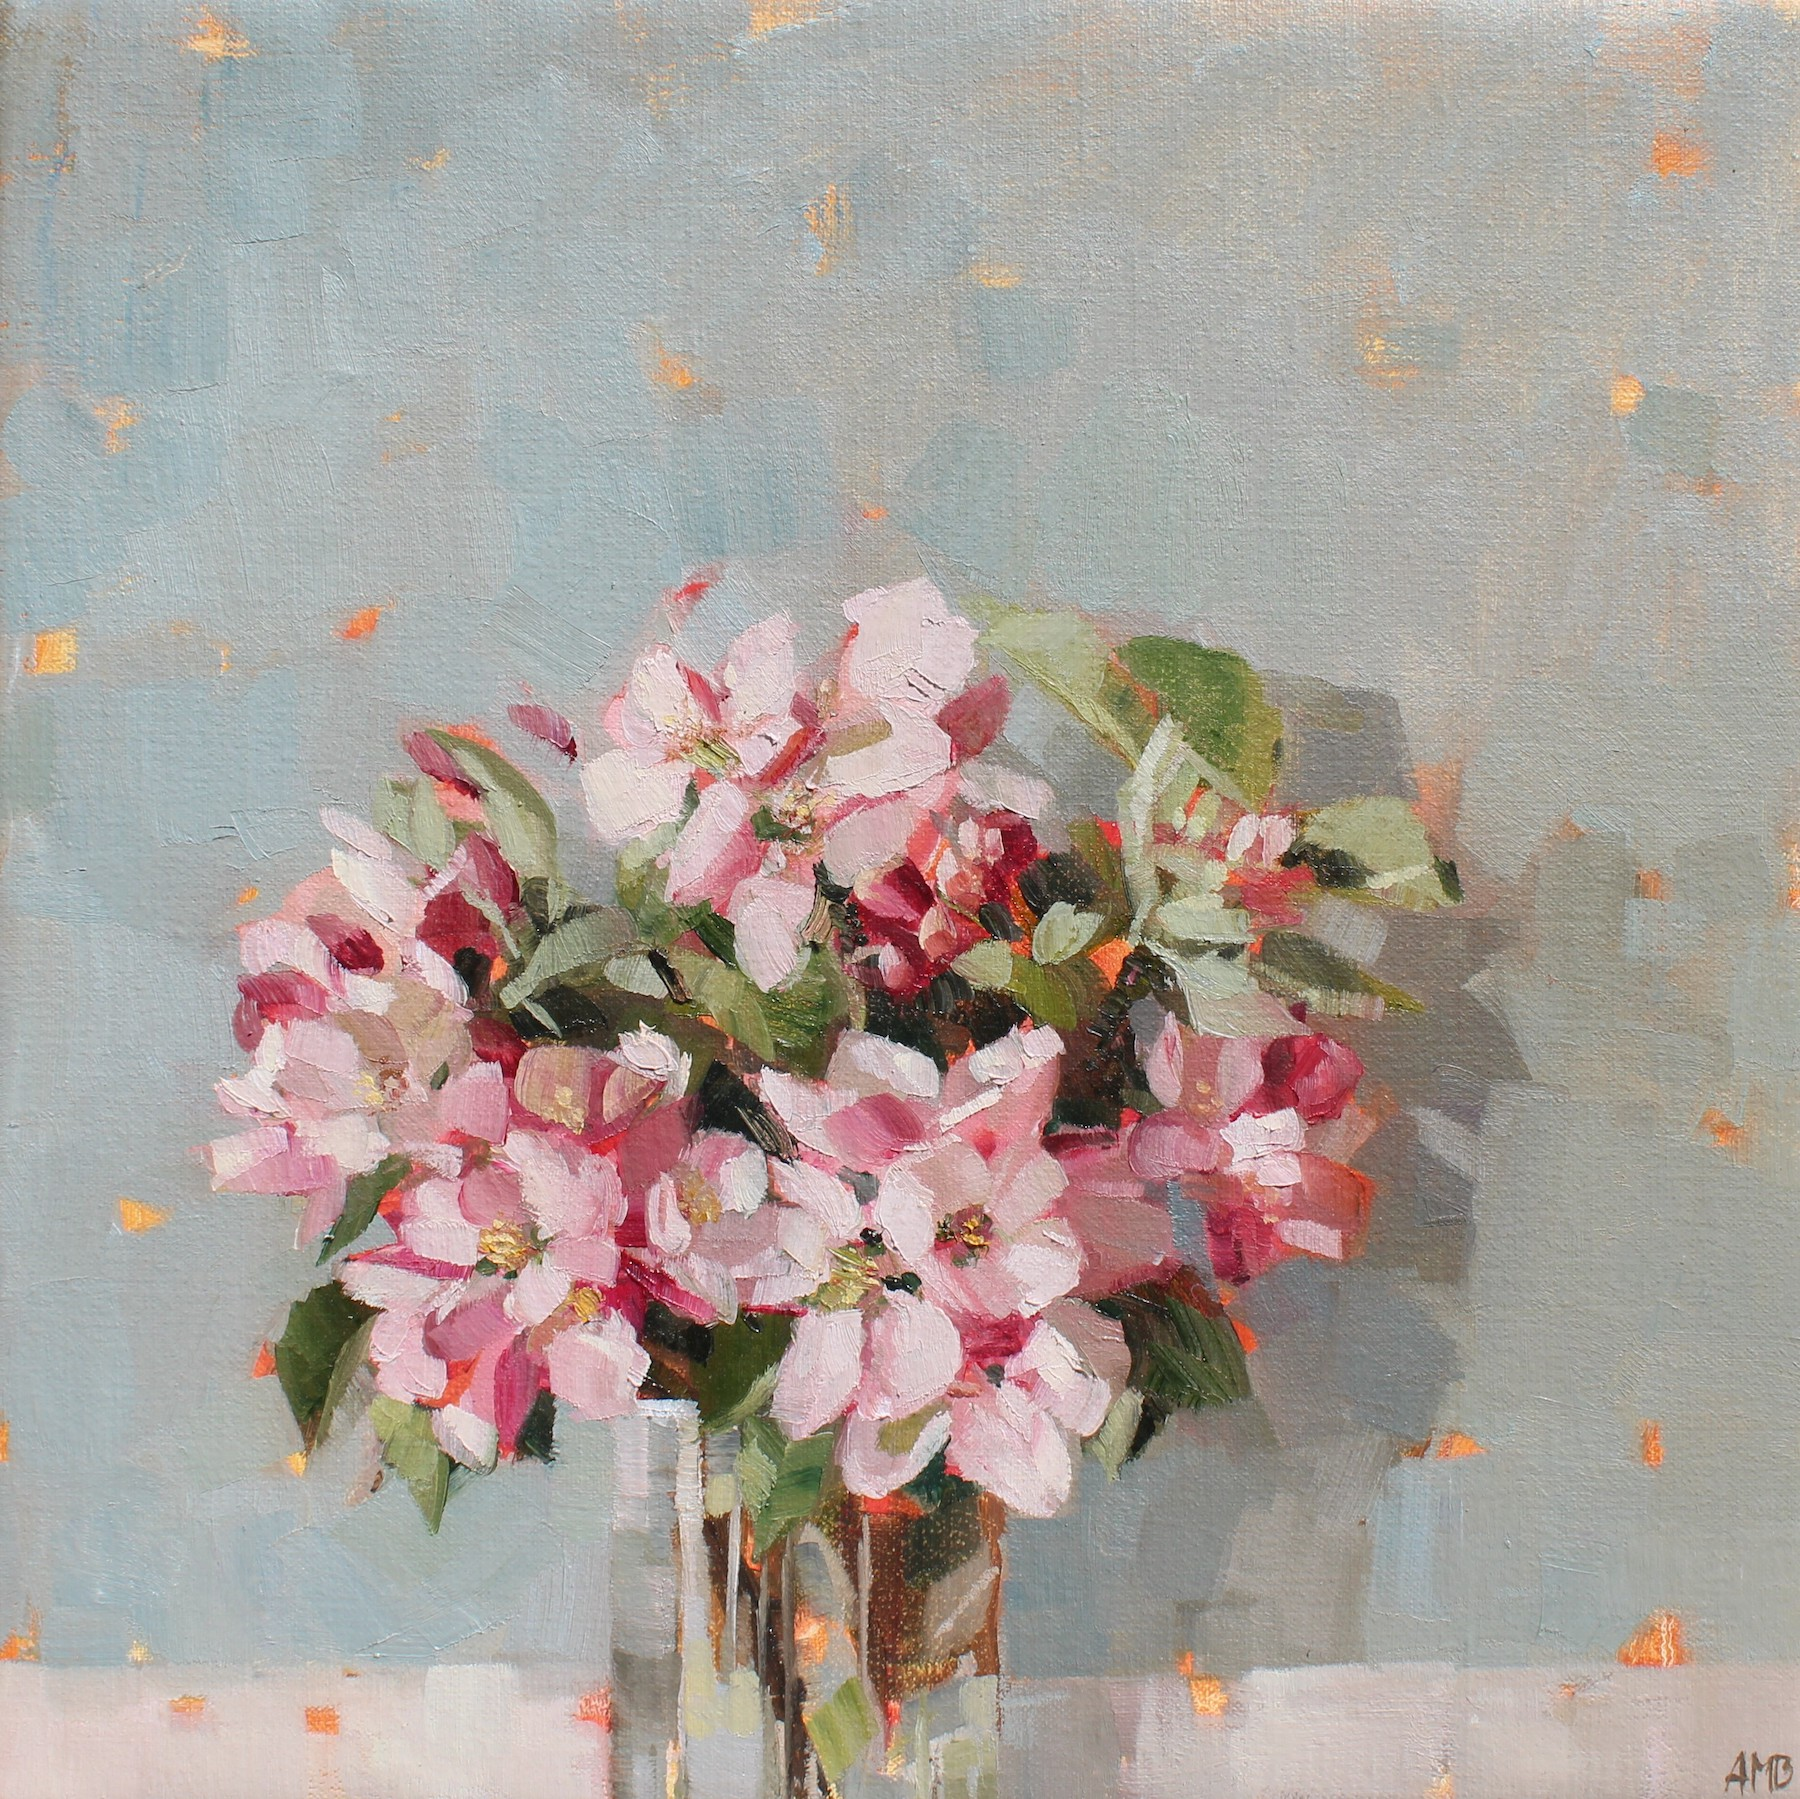 Apple Blossom - Anne-Marie Q&A - Oil painting - Humphrey Munson Blog